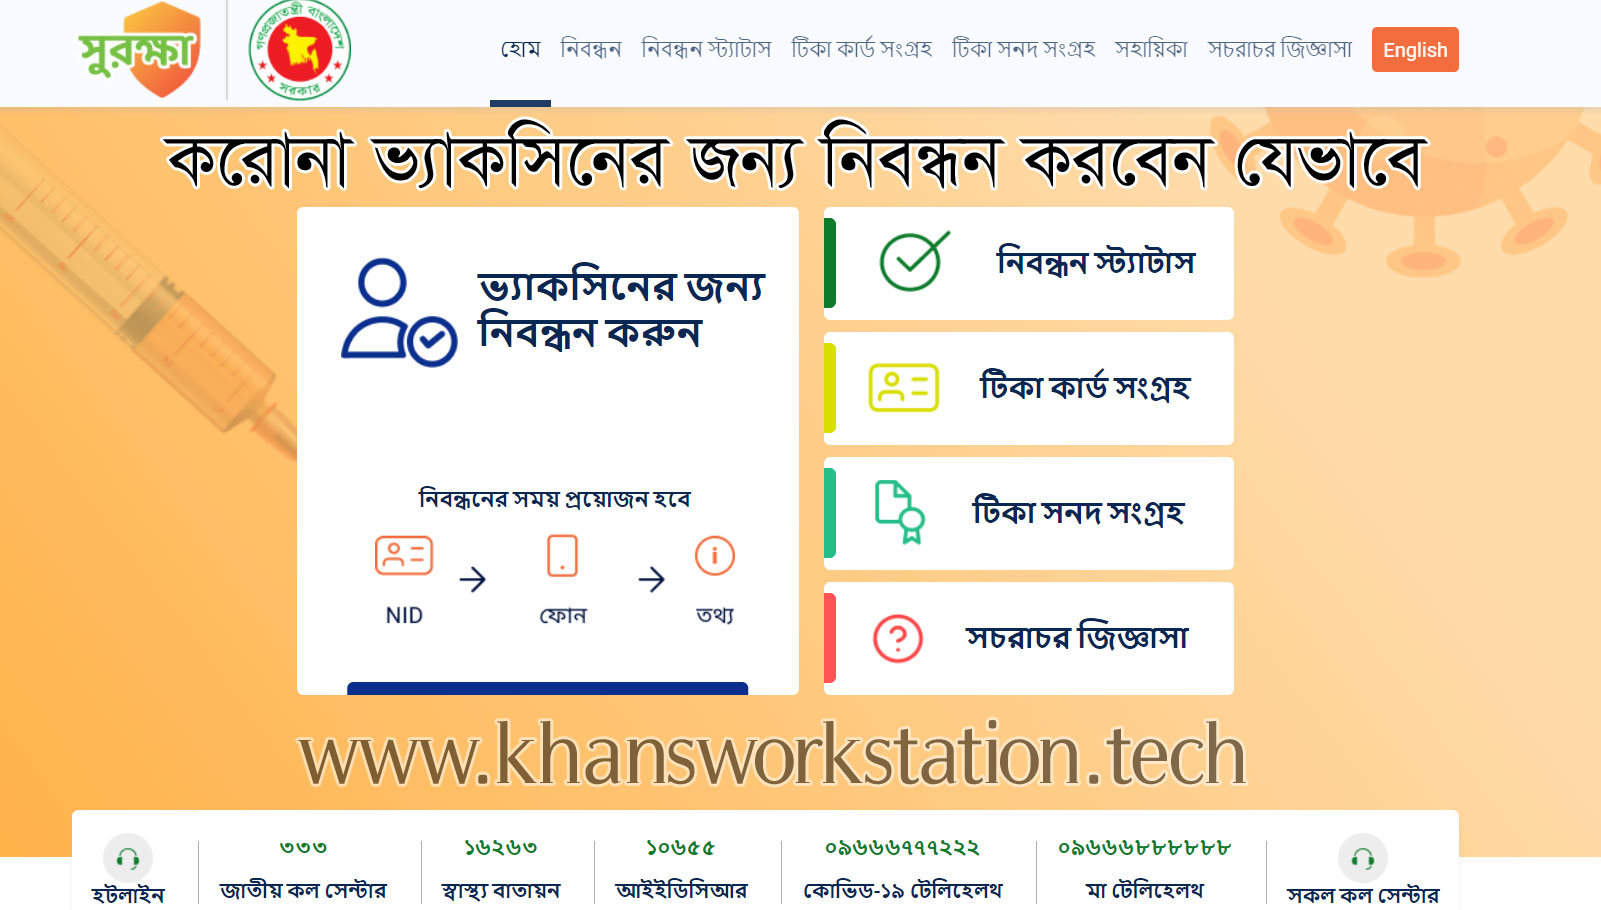 how-to-register-for-corona-vaccine-in-bangladesh